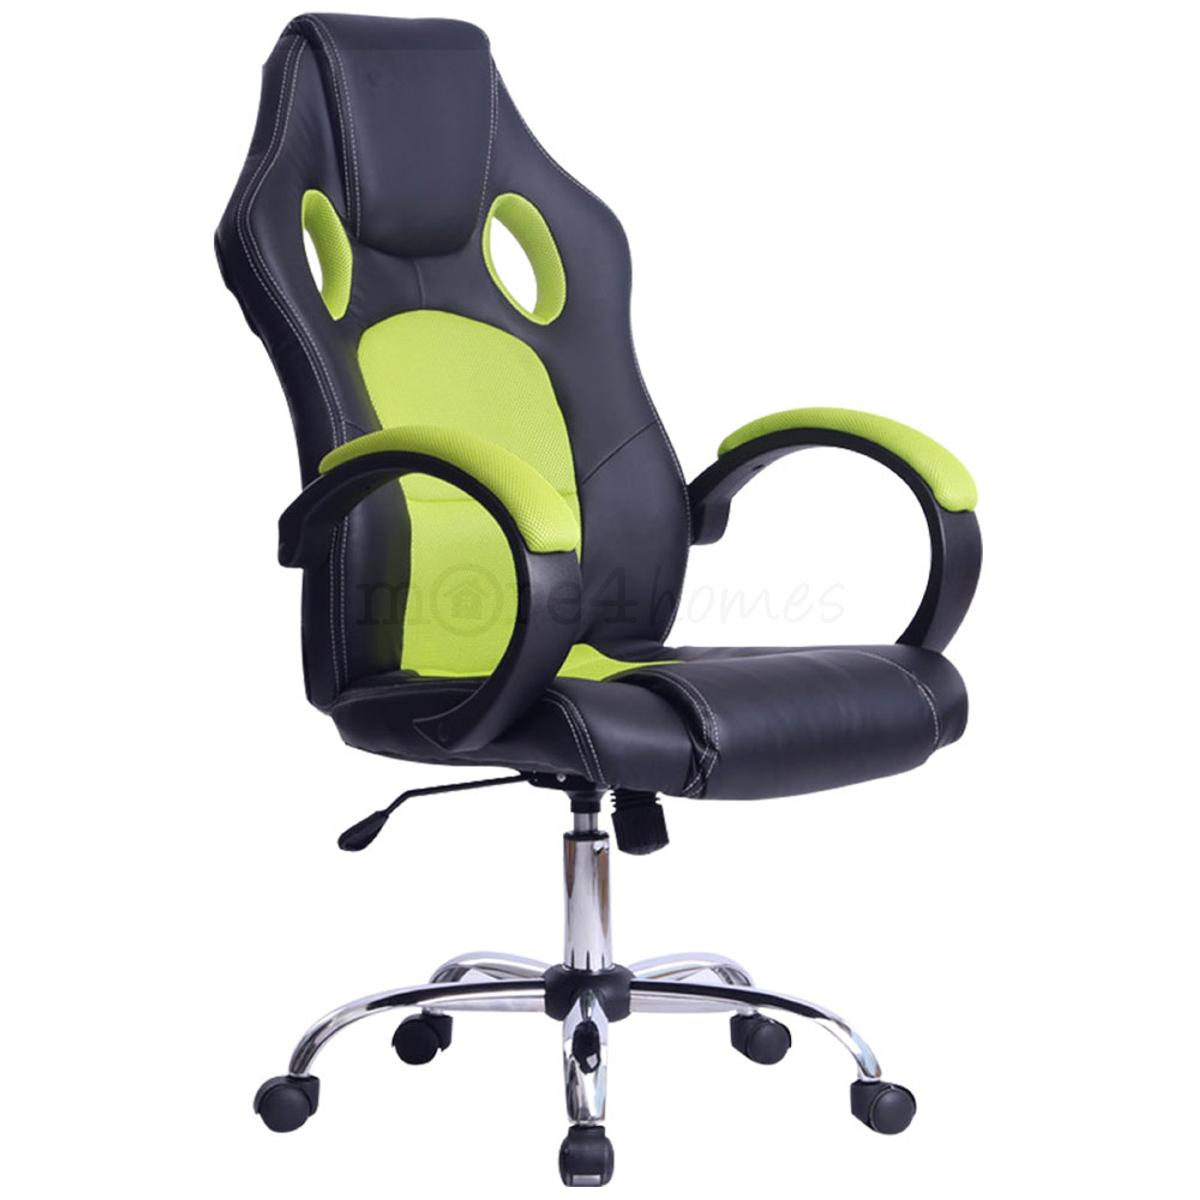 Racing Desk Chair Prix Sport Racing Car Office Chair Faux Leather Mesh